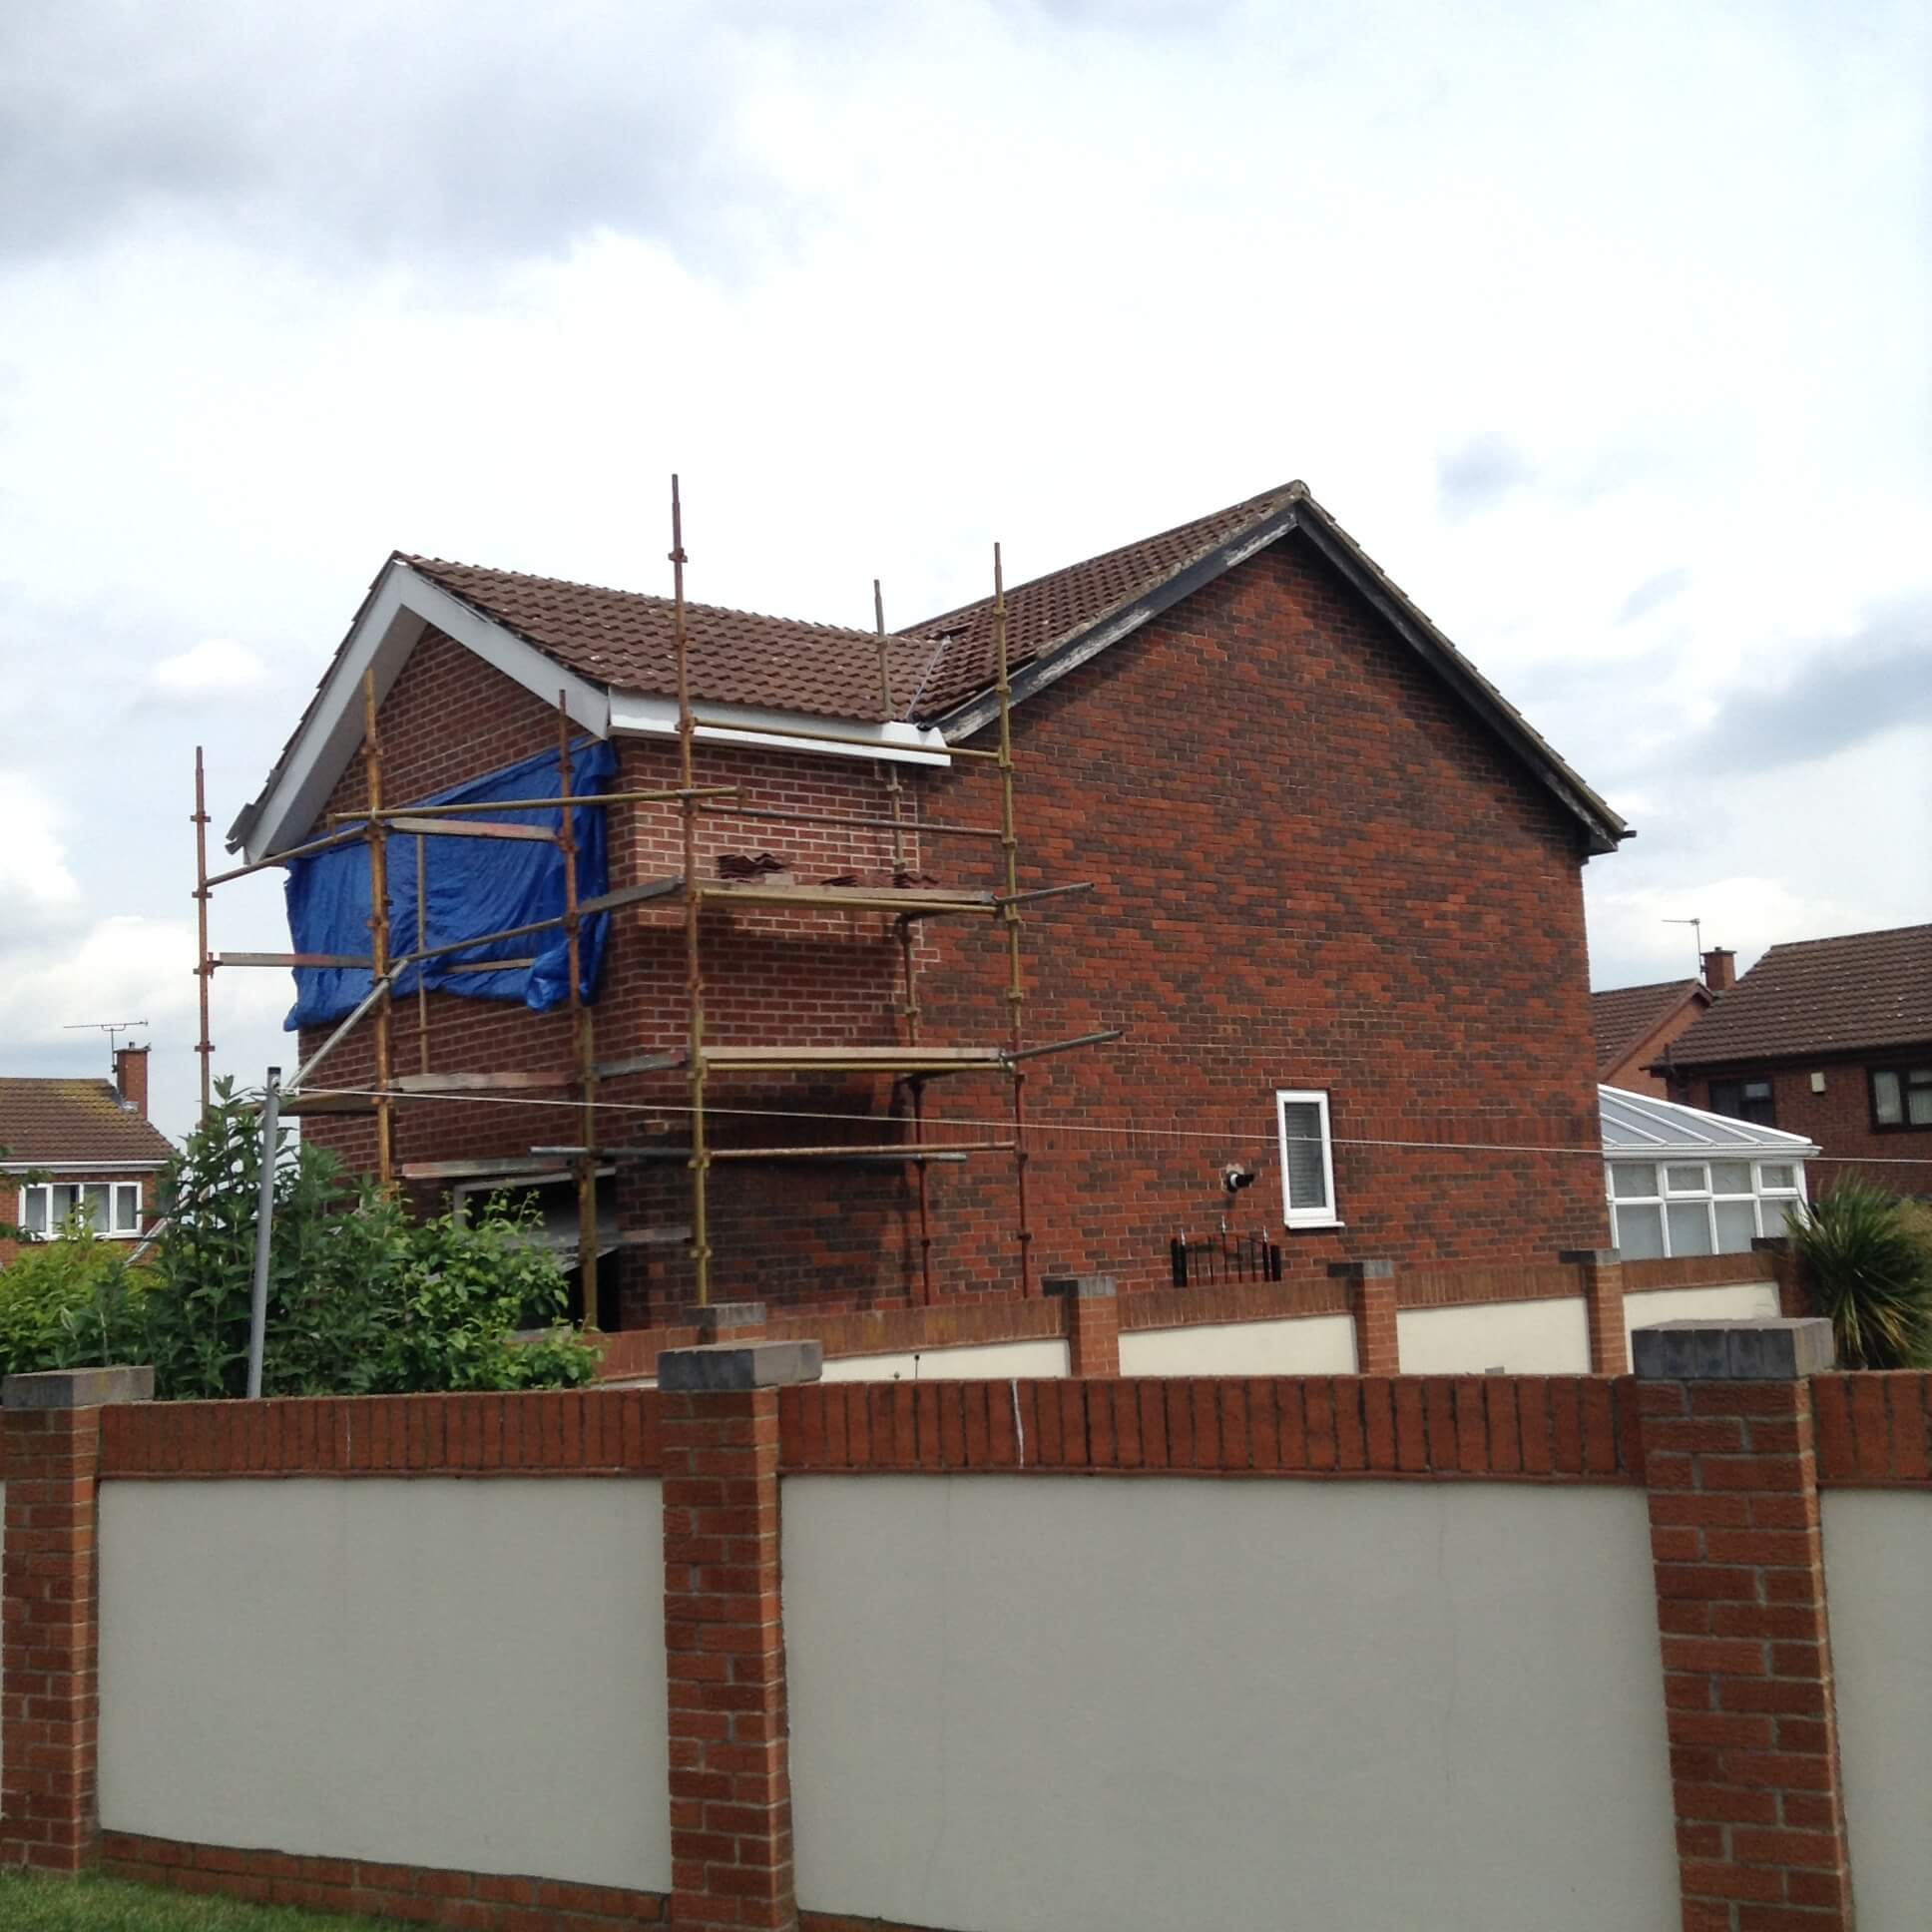 Upstairs extension being built.